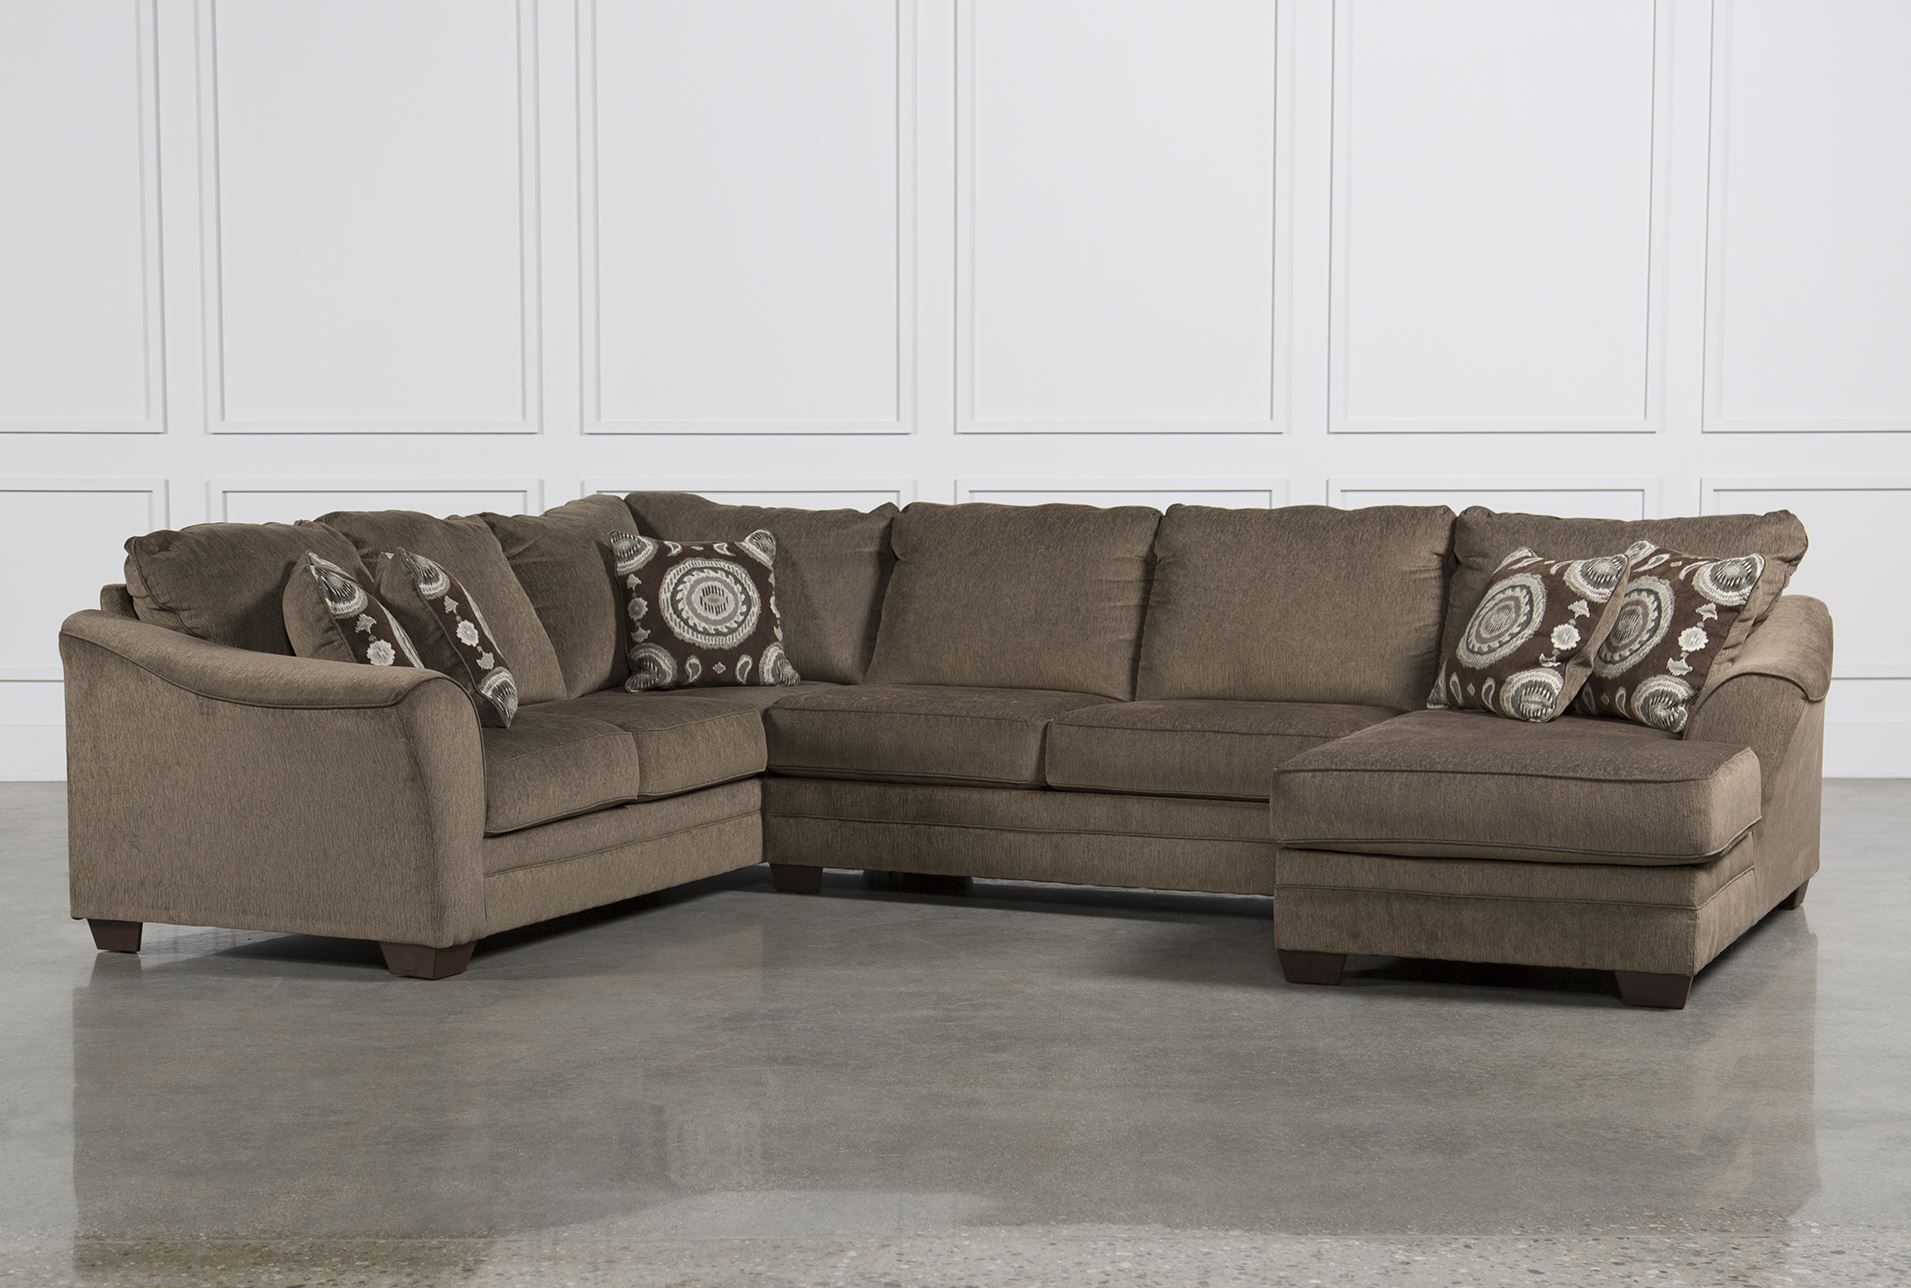 Cosmo Marble 3 Piece Sectional W/raf Chaise | Family Room regarding Sierra Foam Ii 3 Piece Sectionals (Image 10 of 30)